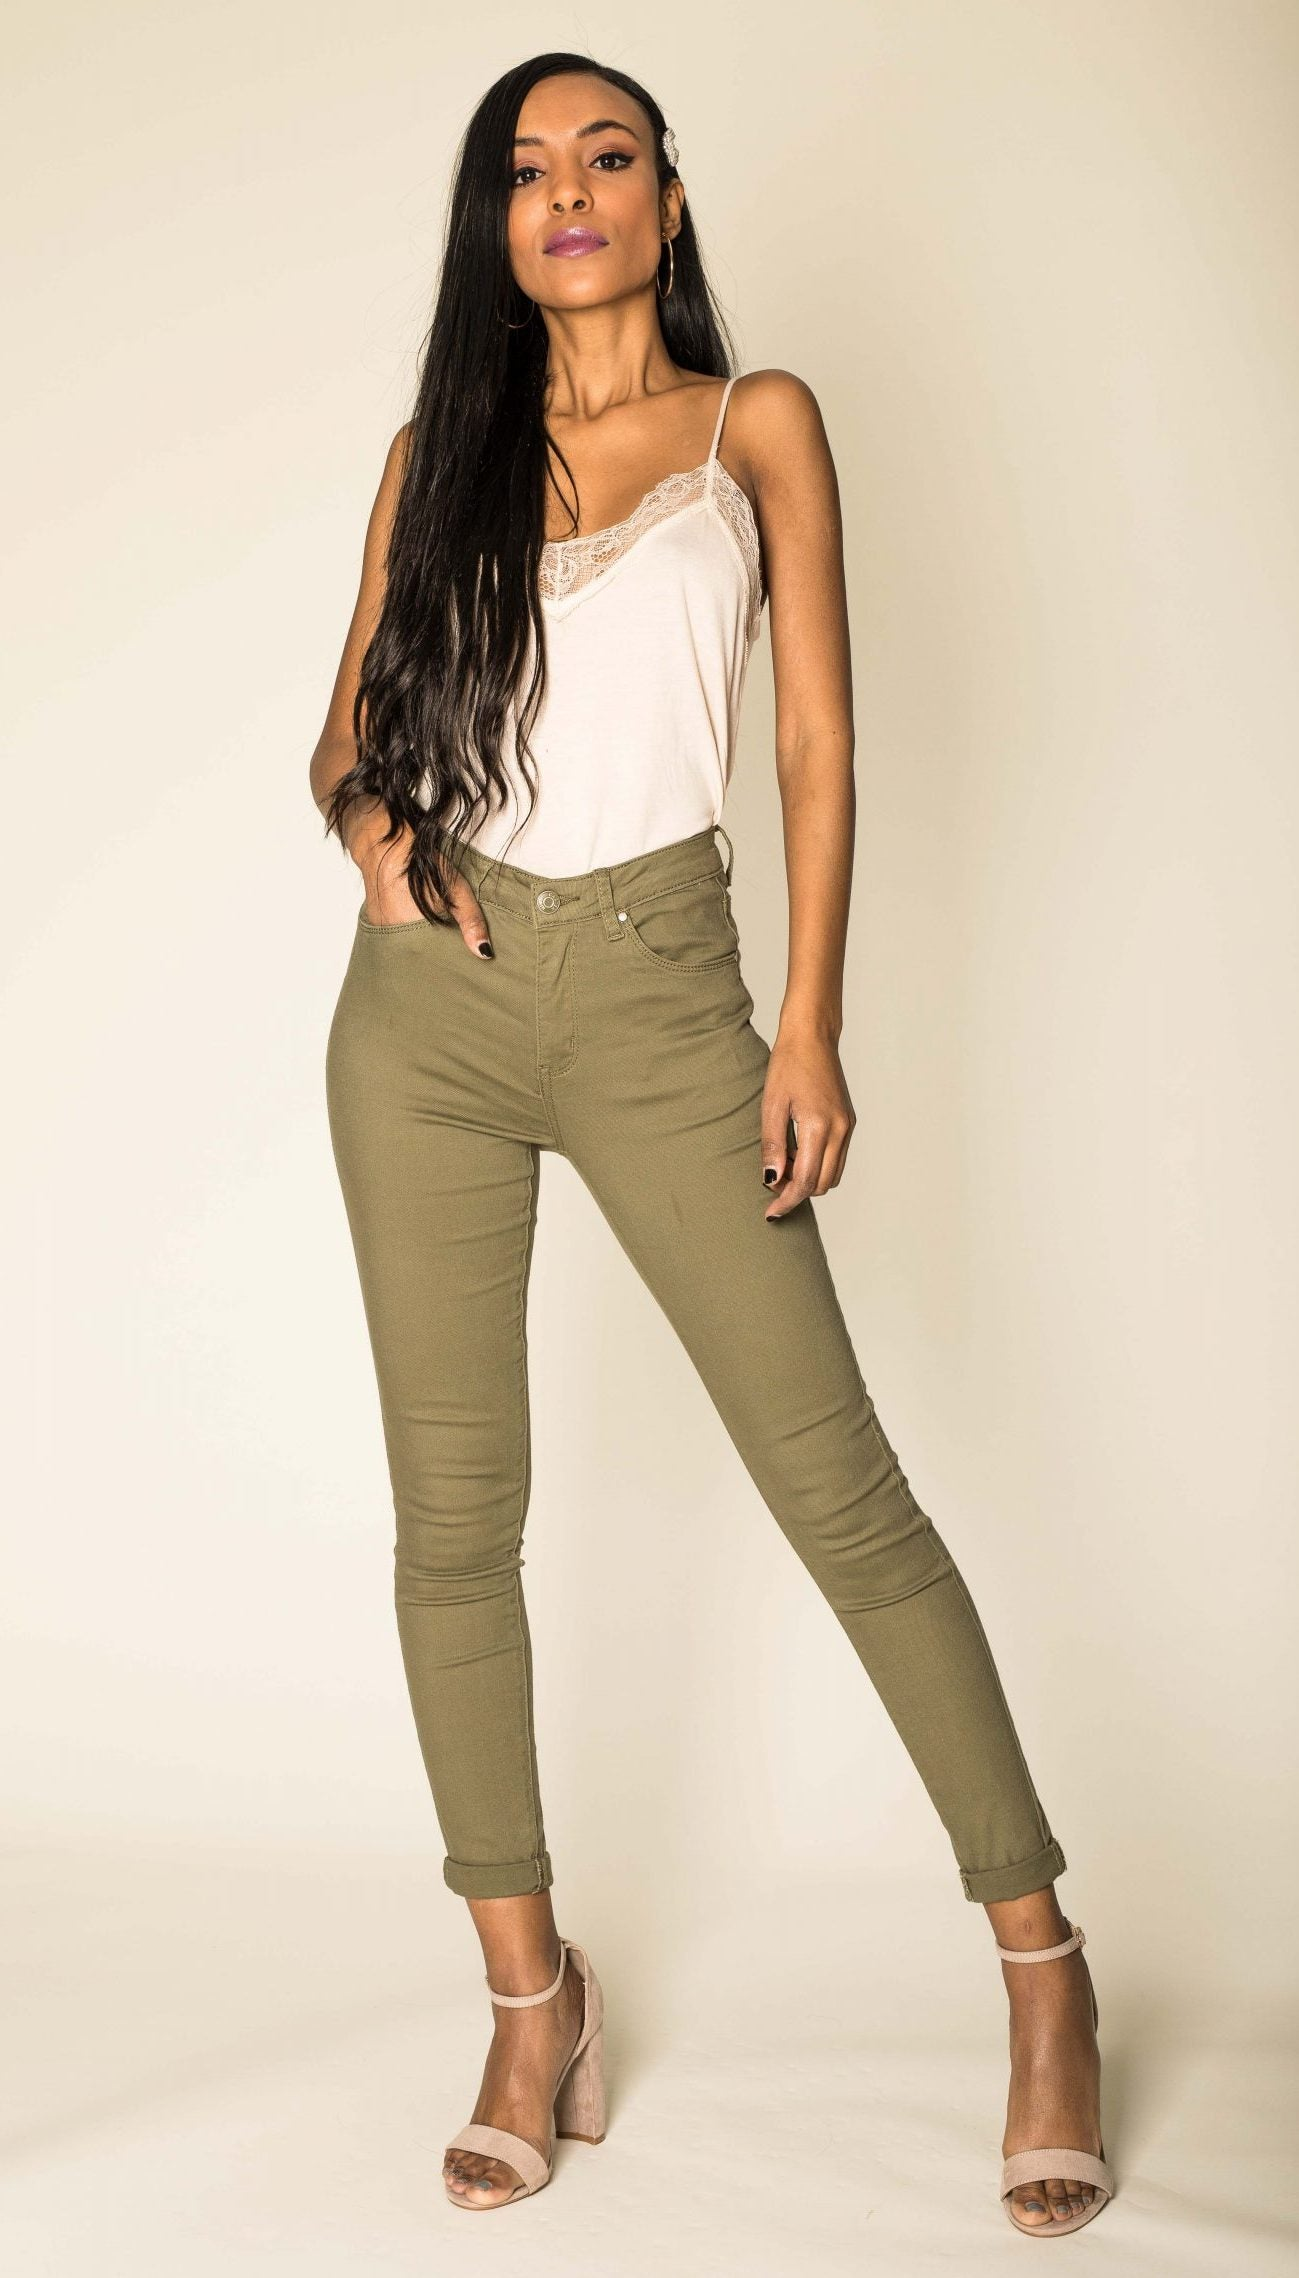 Wholesale Khaki High Waist Jeans